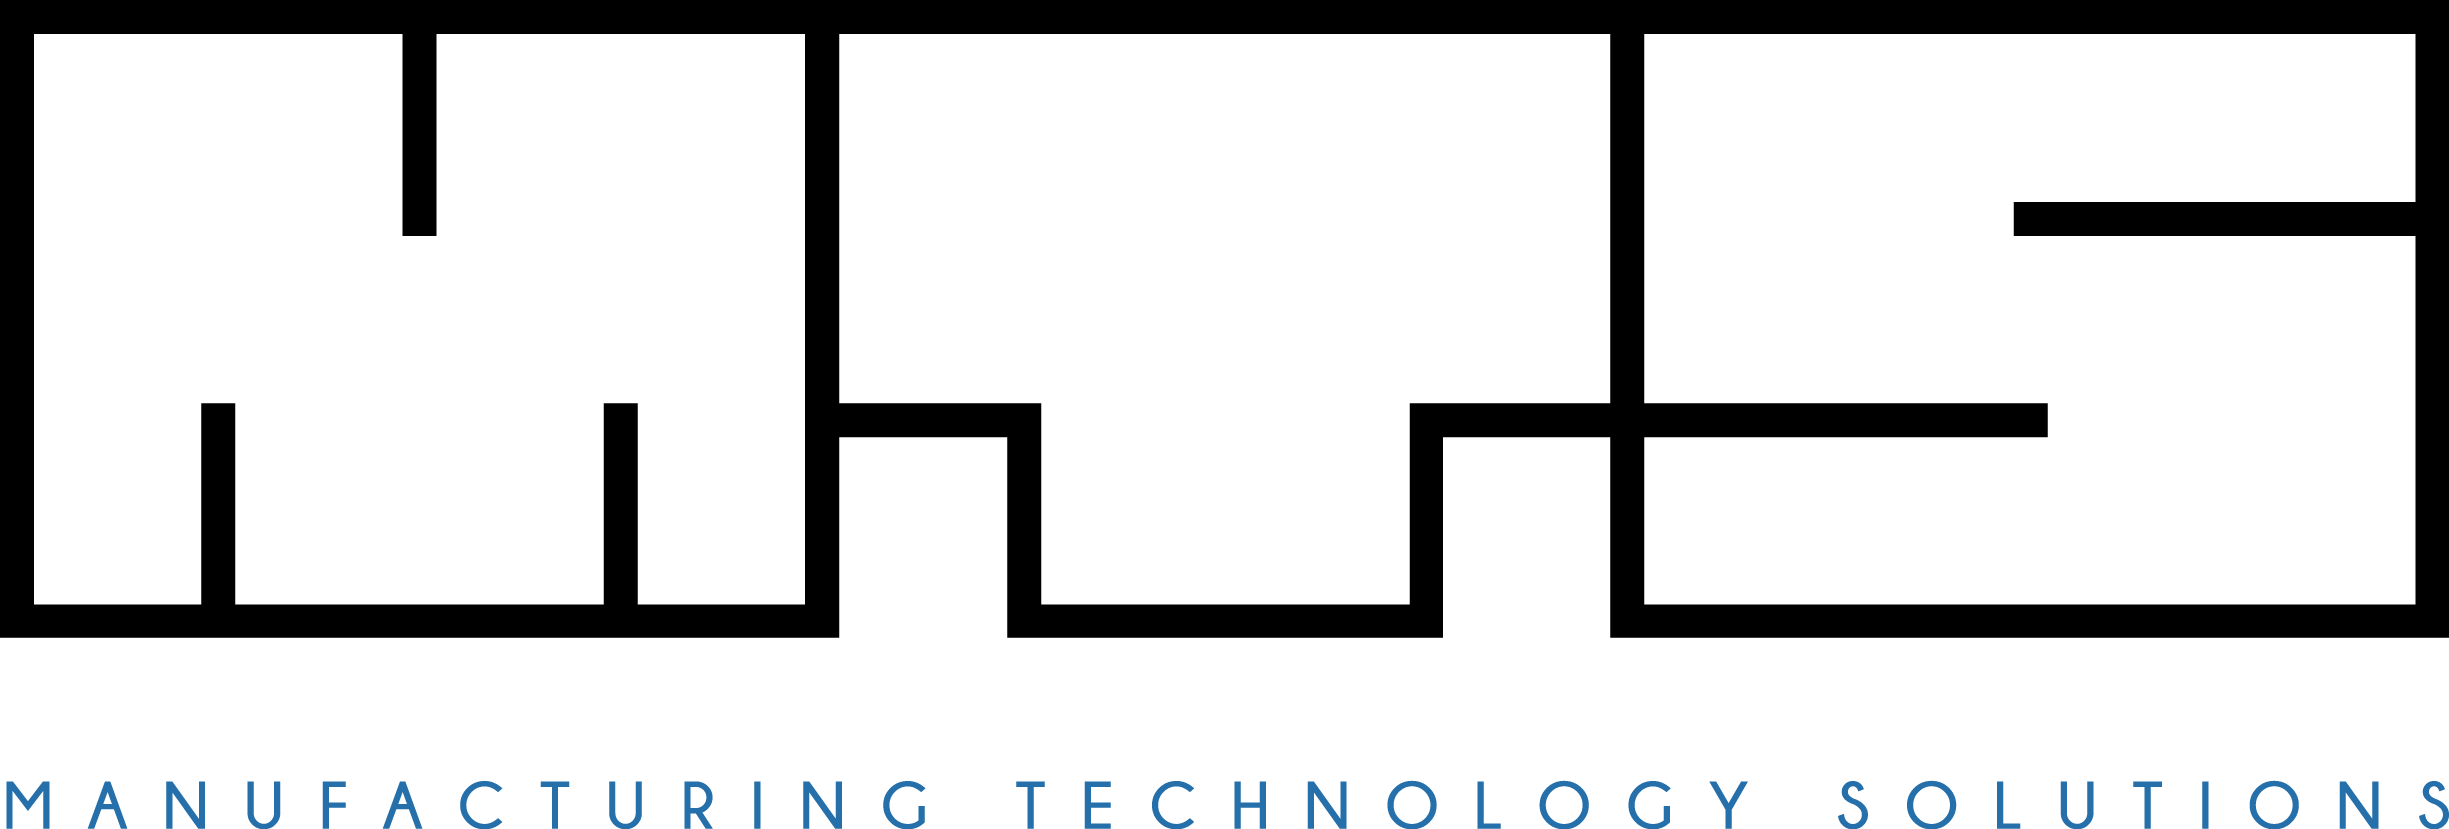 MTS | Manufacturing Technology Solutions